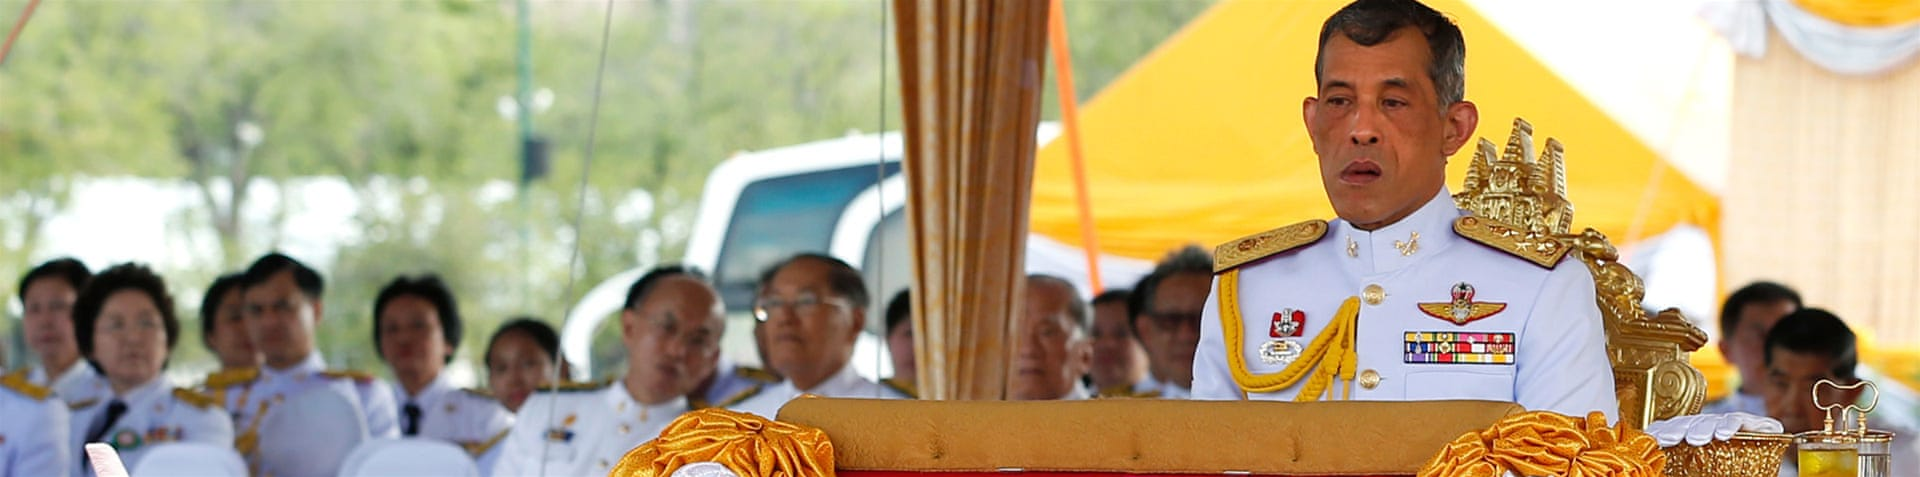 Vajiralongkorn becomes the tenth king in the 234-year-old Chakri dynasty [Reuters]